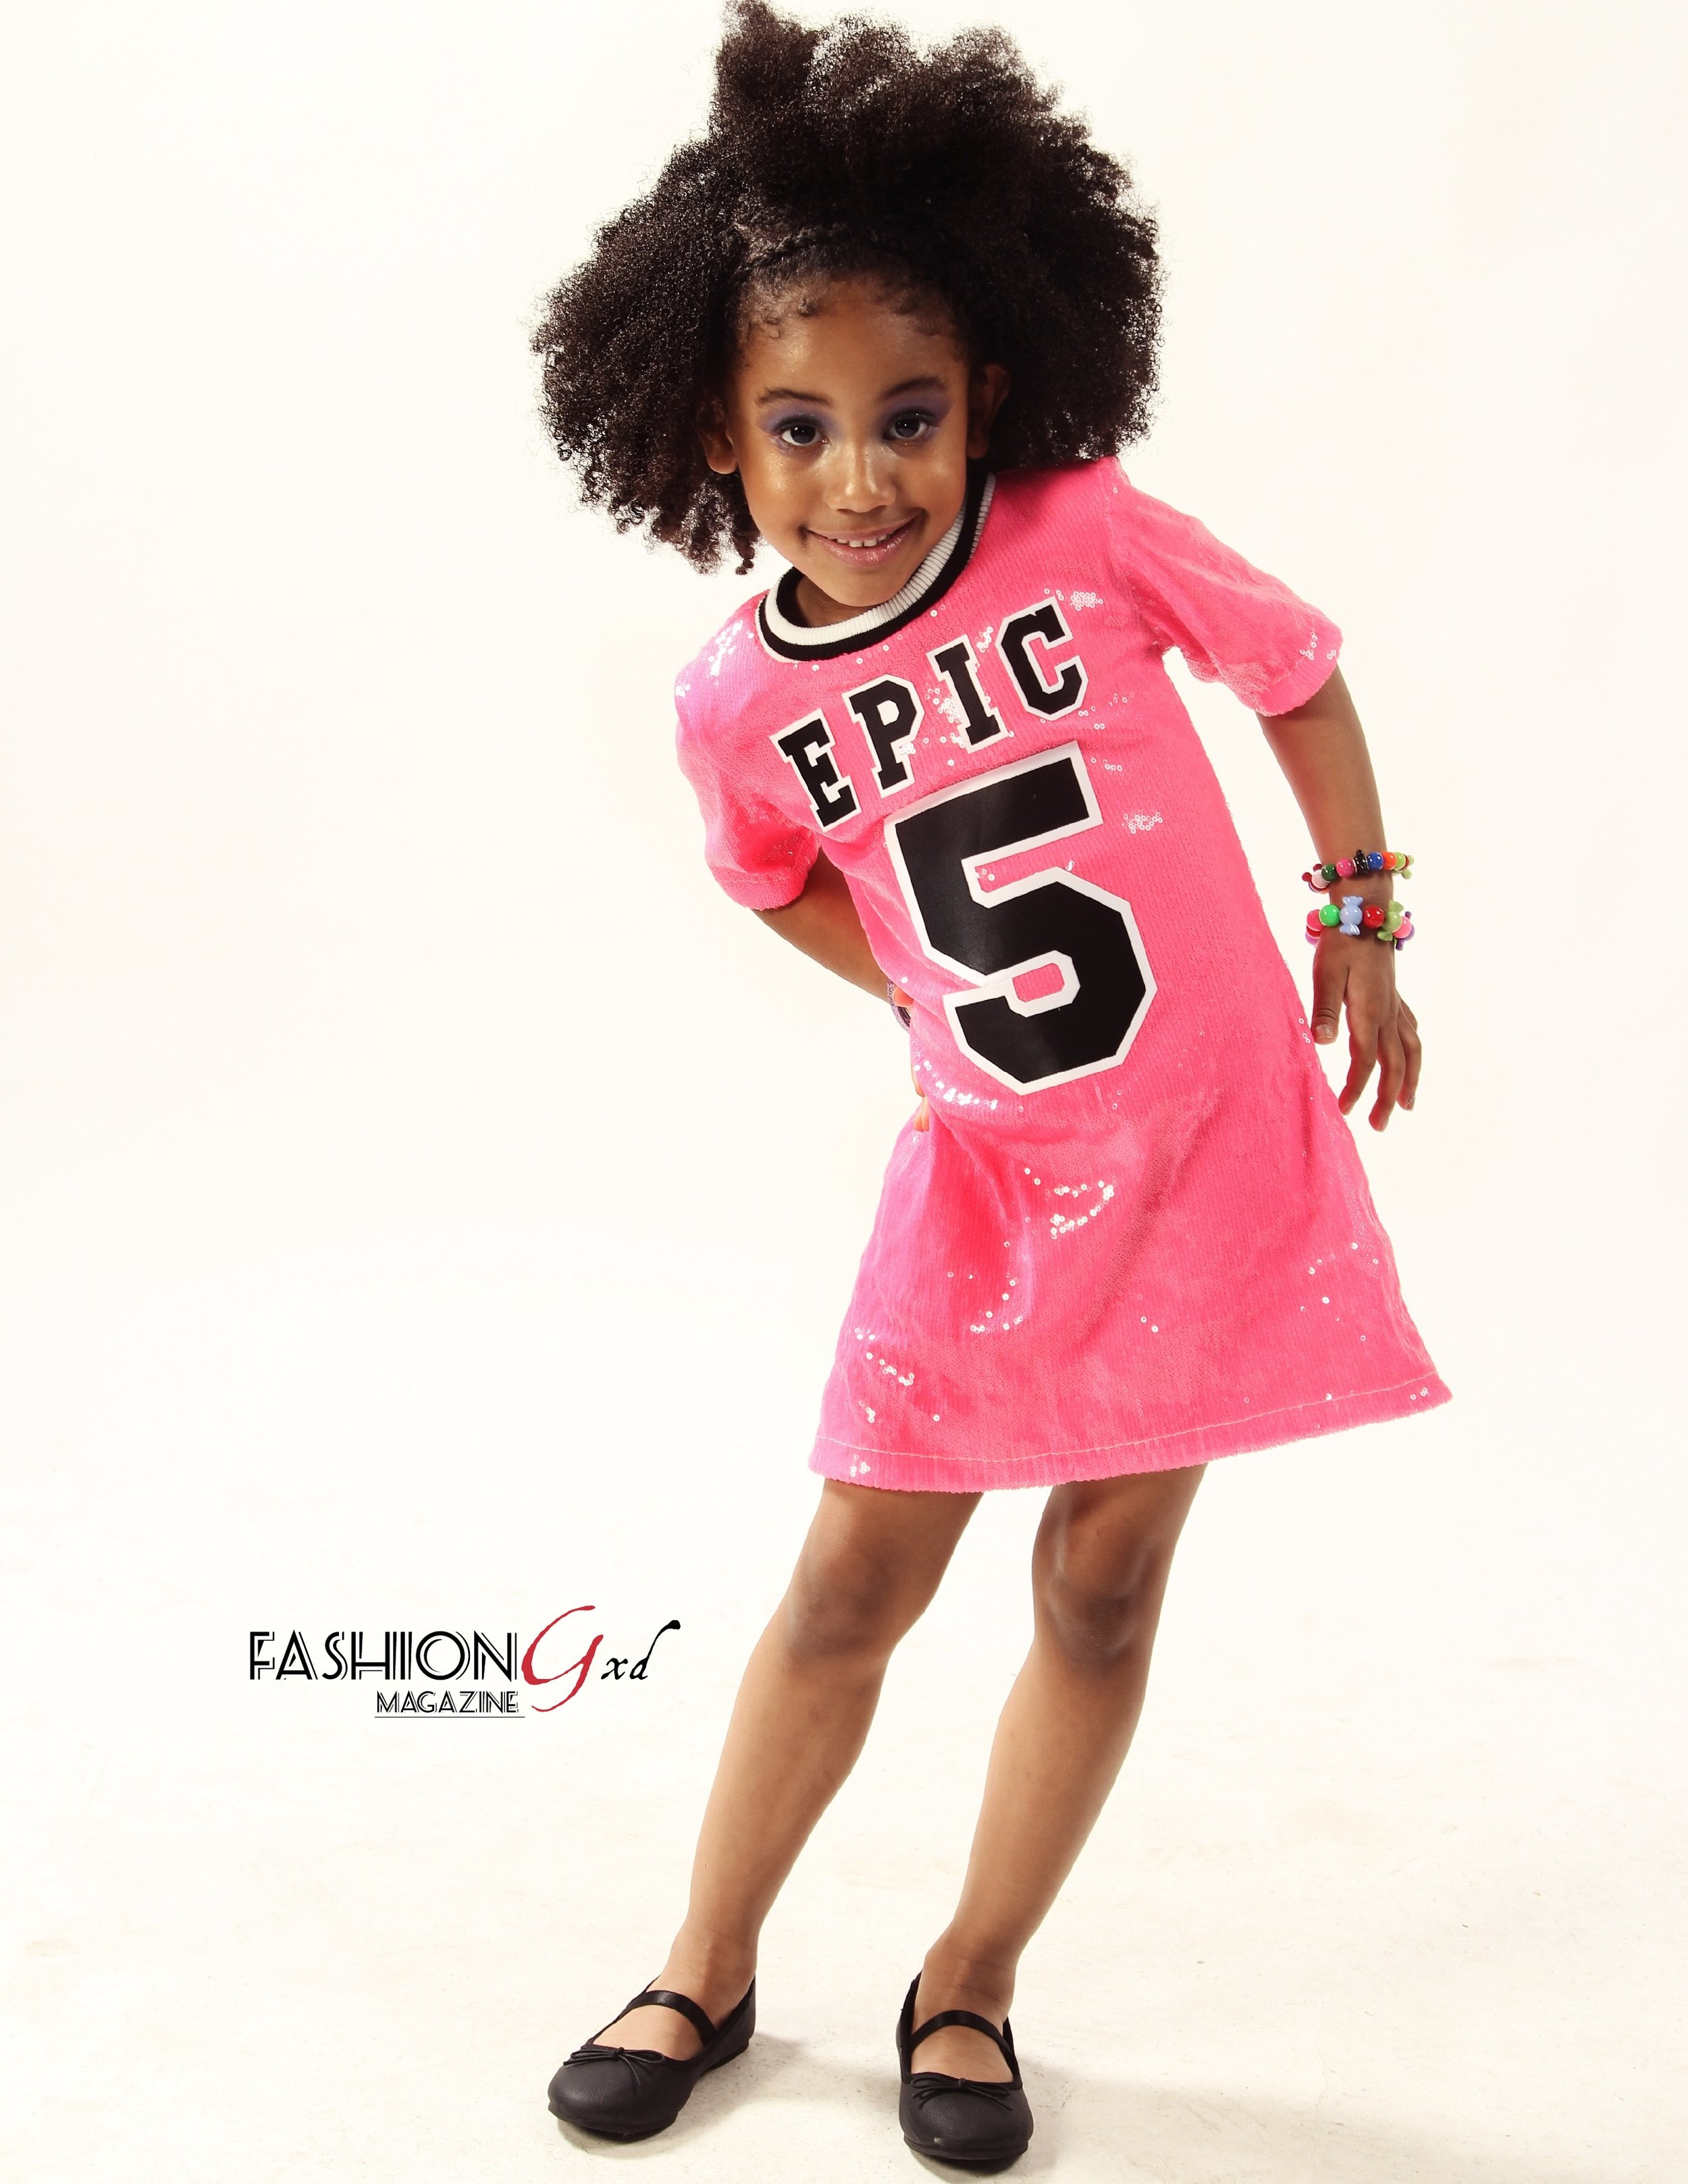 Tamia For Fashion Gxd 1 - Untitled Page.jpeg